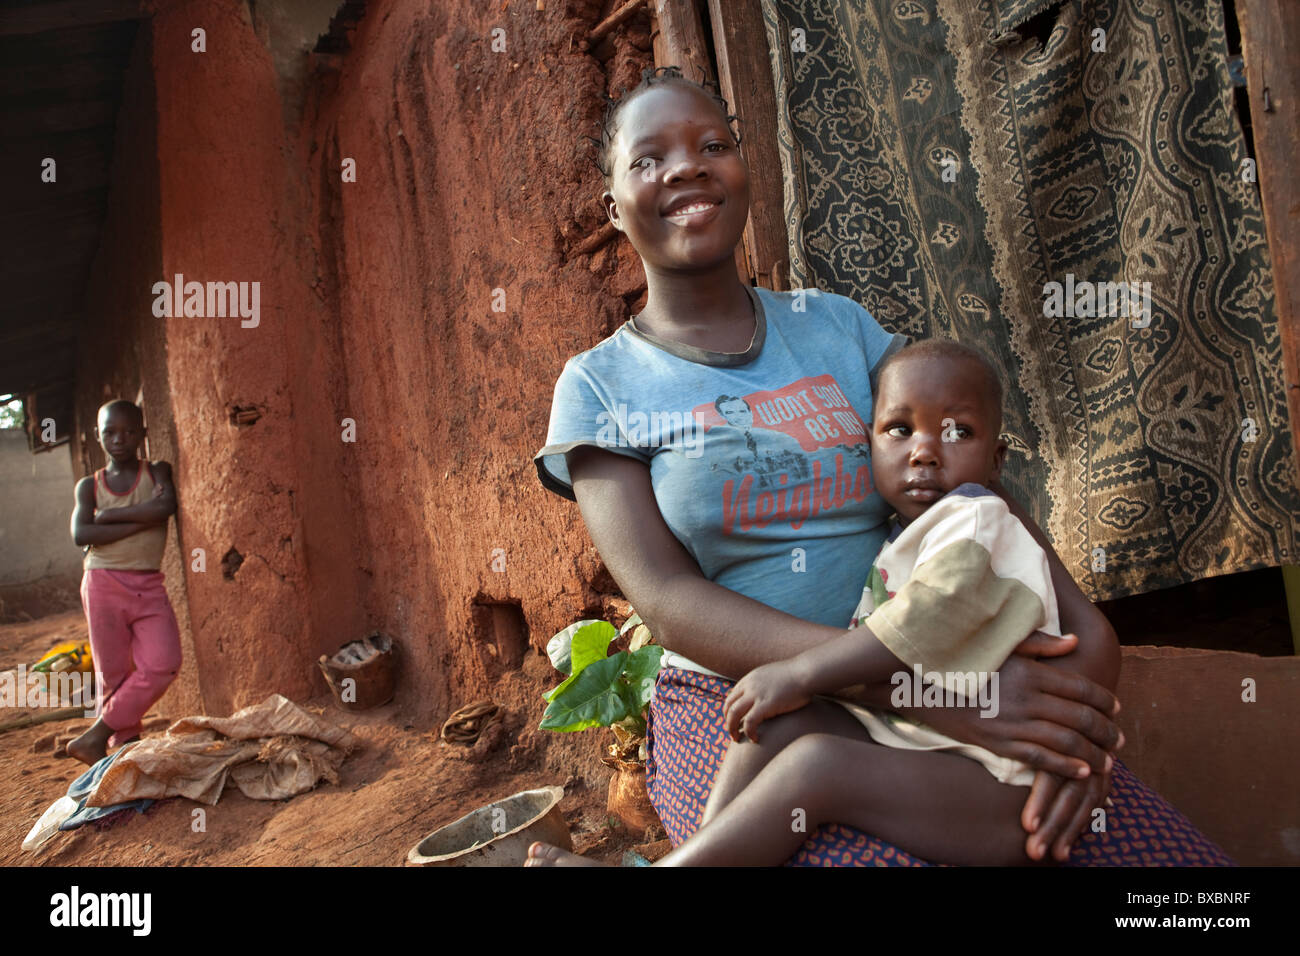 A woman holds her child outside her home in a slum in Jinja, Uganda, East Africa. Stock Photo